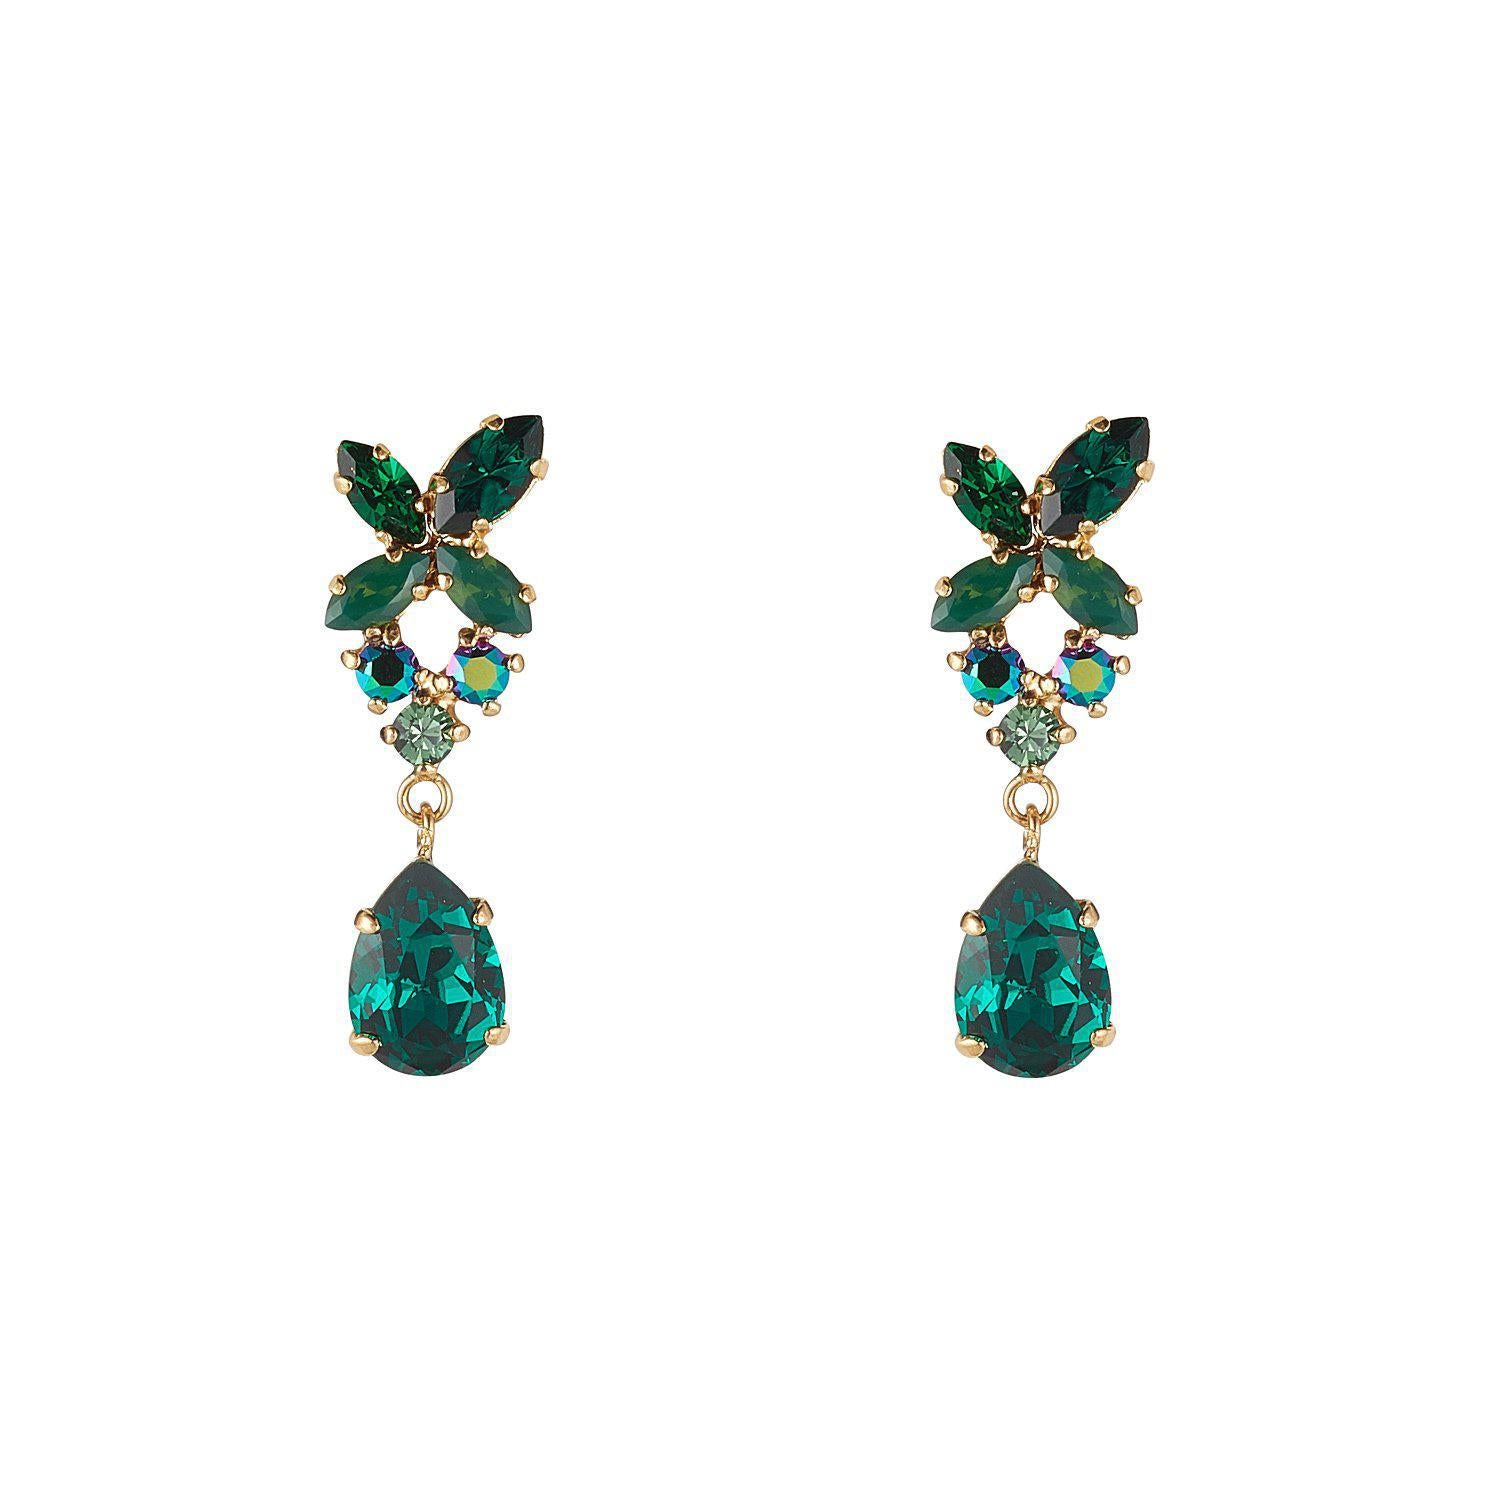 Emerald Green Swarovski Crystal Drop Earrings